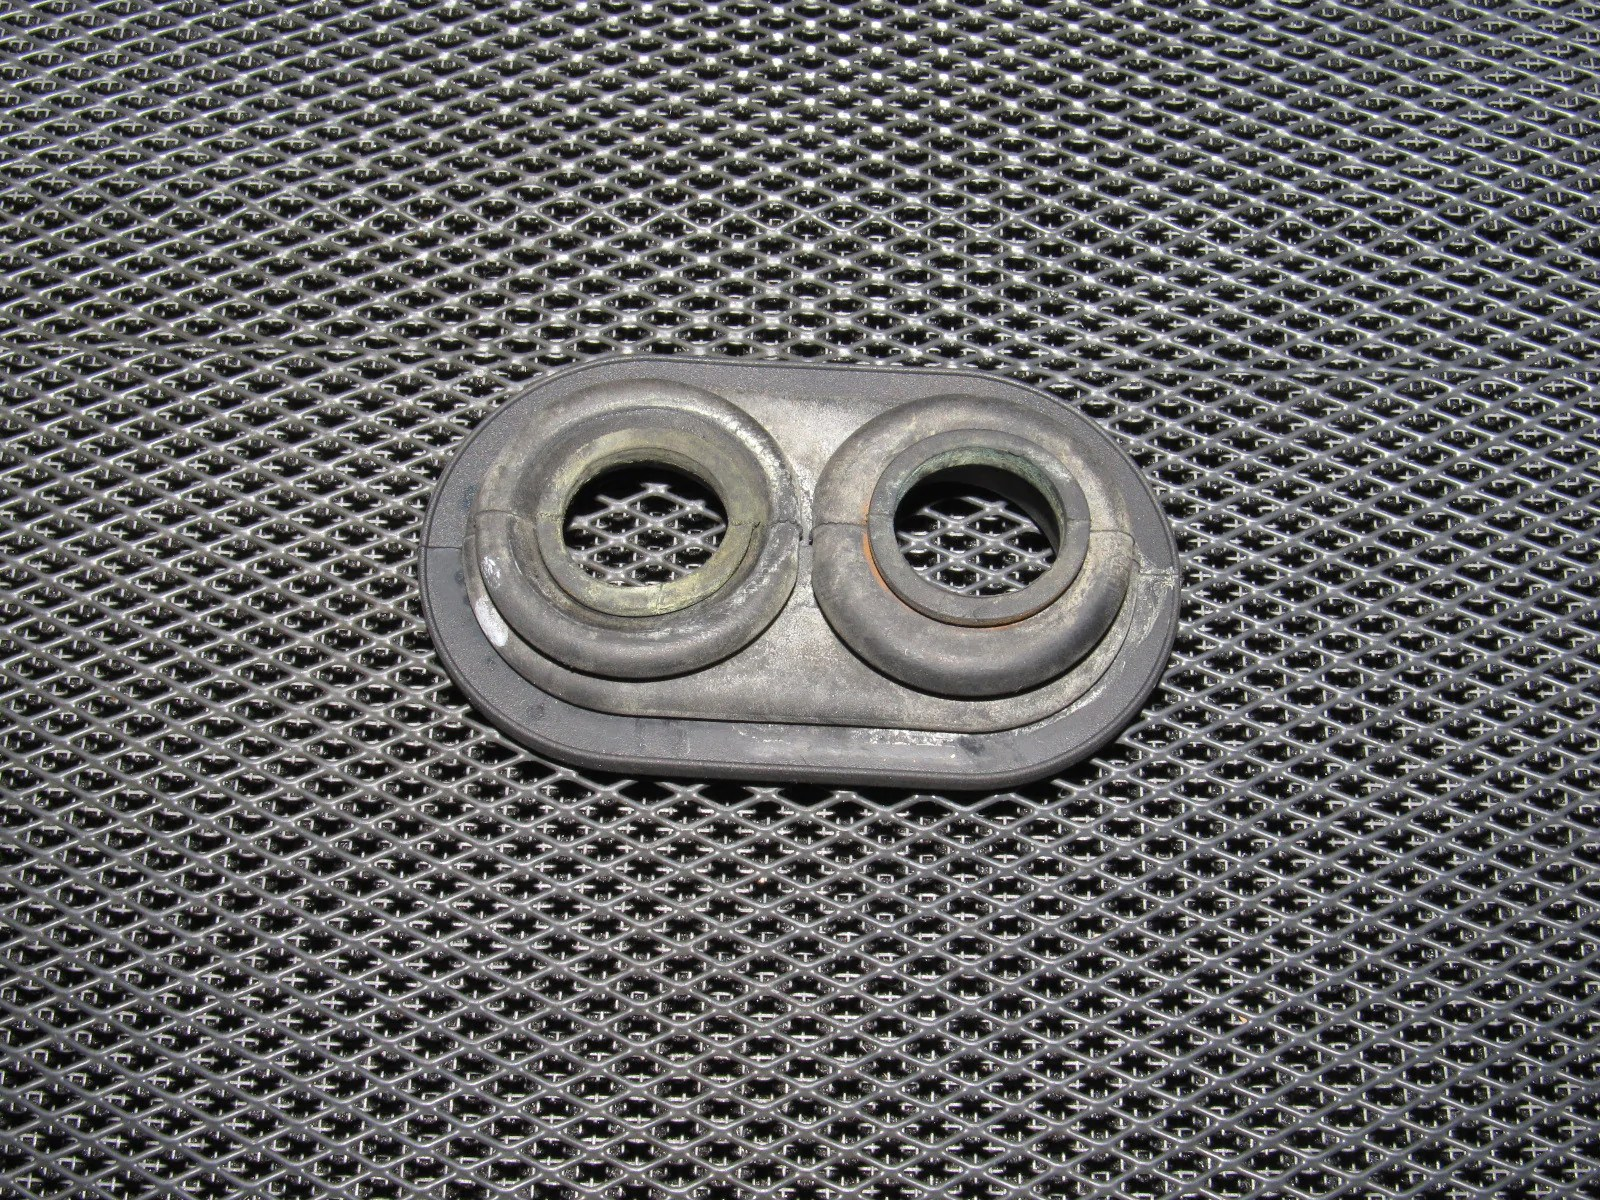 hight resolution of  honda crx oem heater core grommet product image